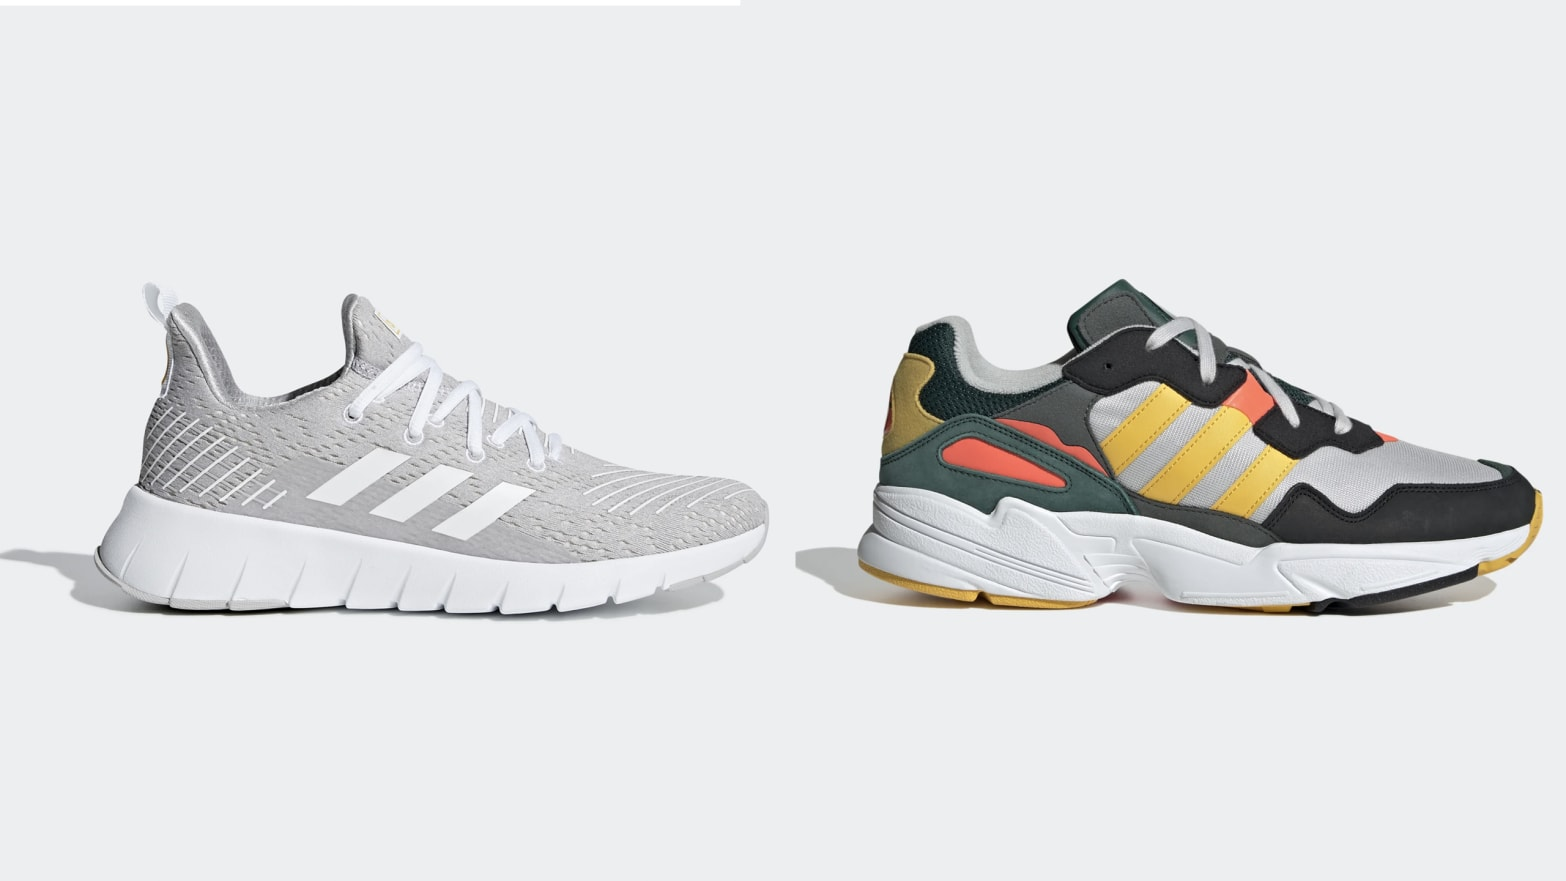 Celebrate Adidas' Birthday With Up to 70% Off Sneakers, Clothing, and More